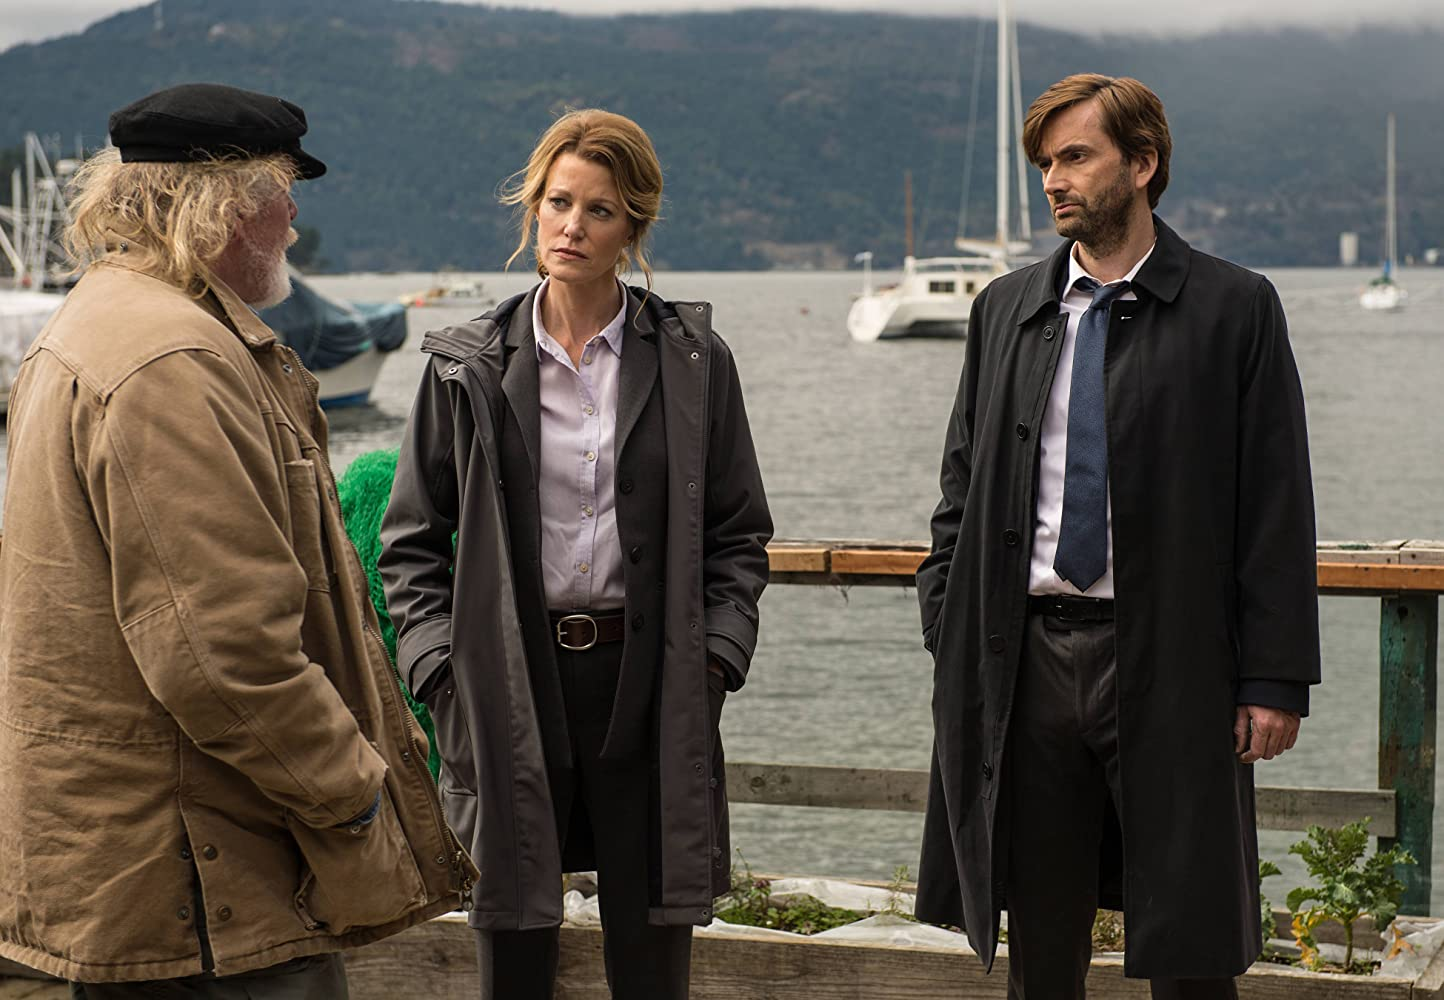 Nick Nolte, Anna Gunn, and David Tennant in Gracepoint (2014)